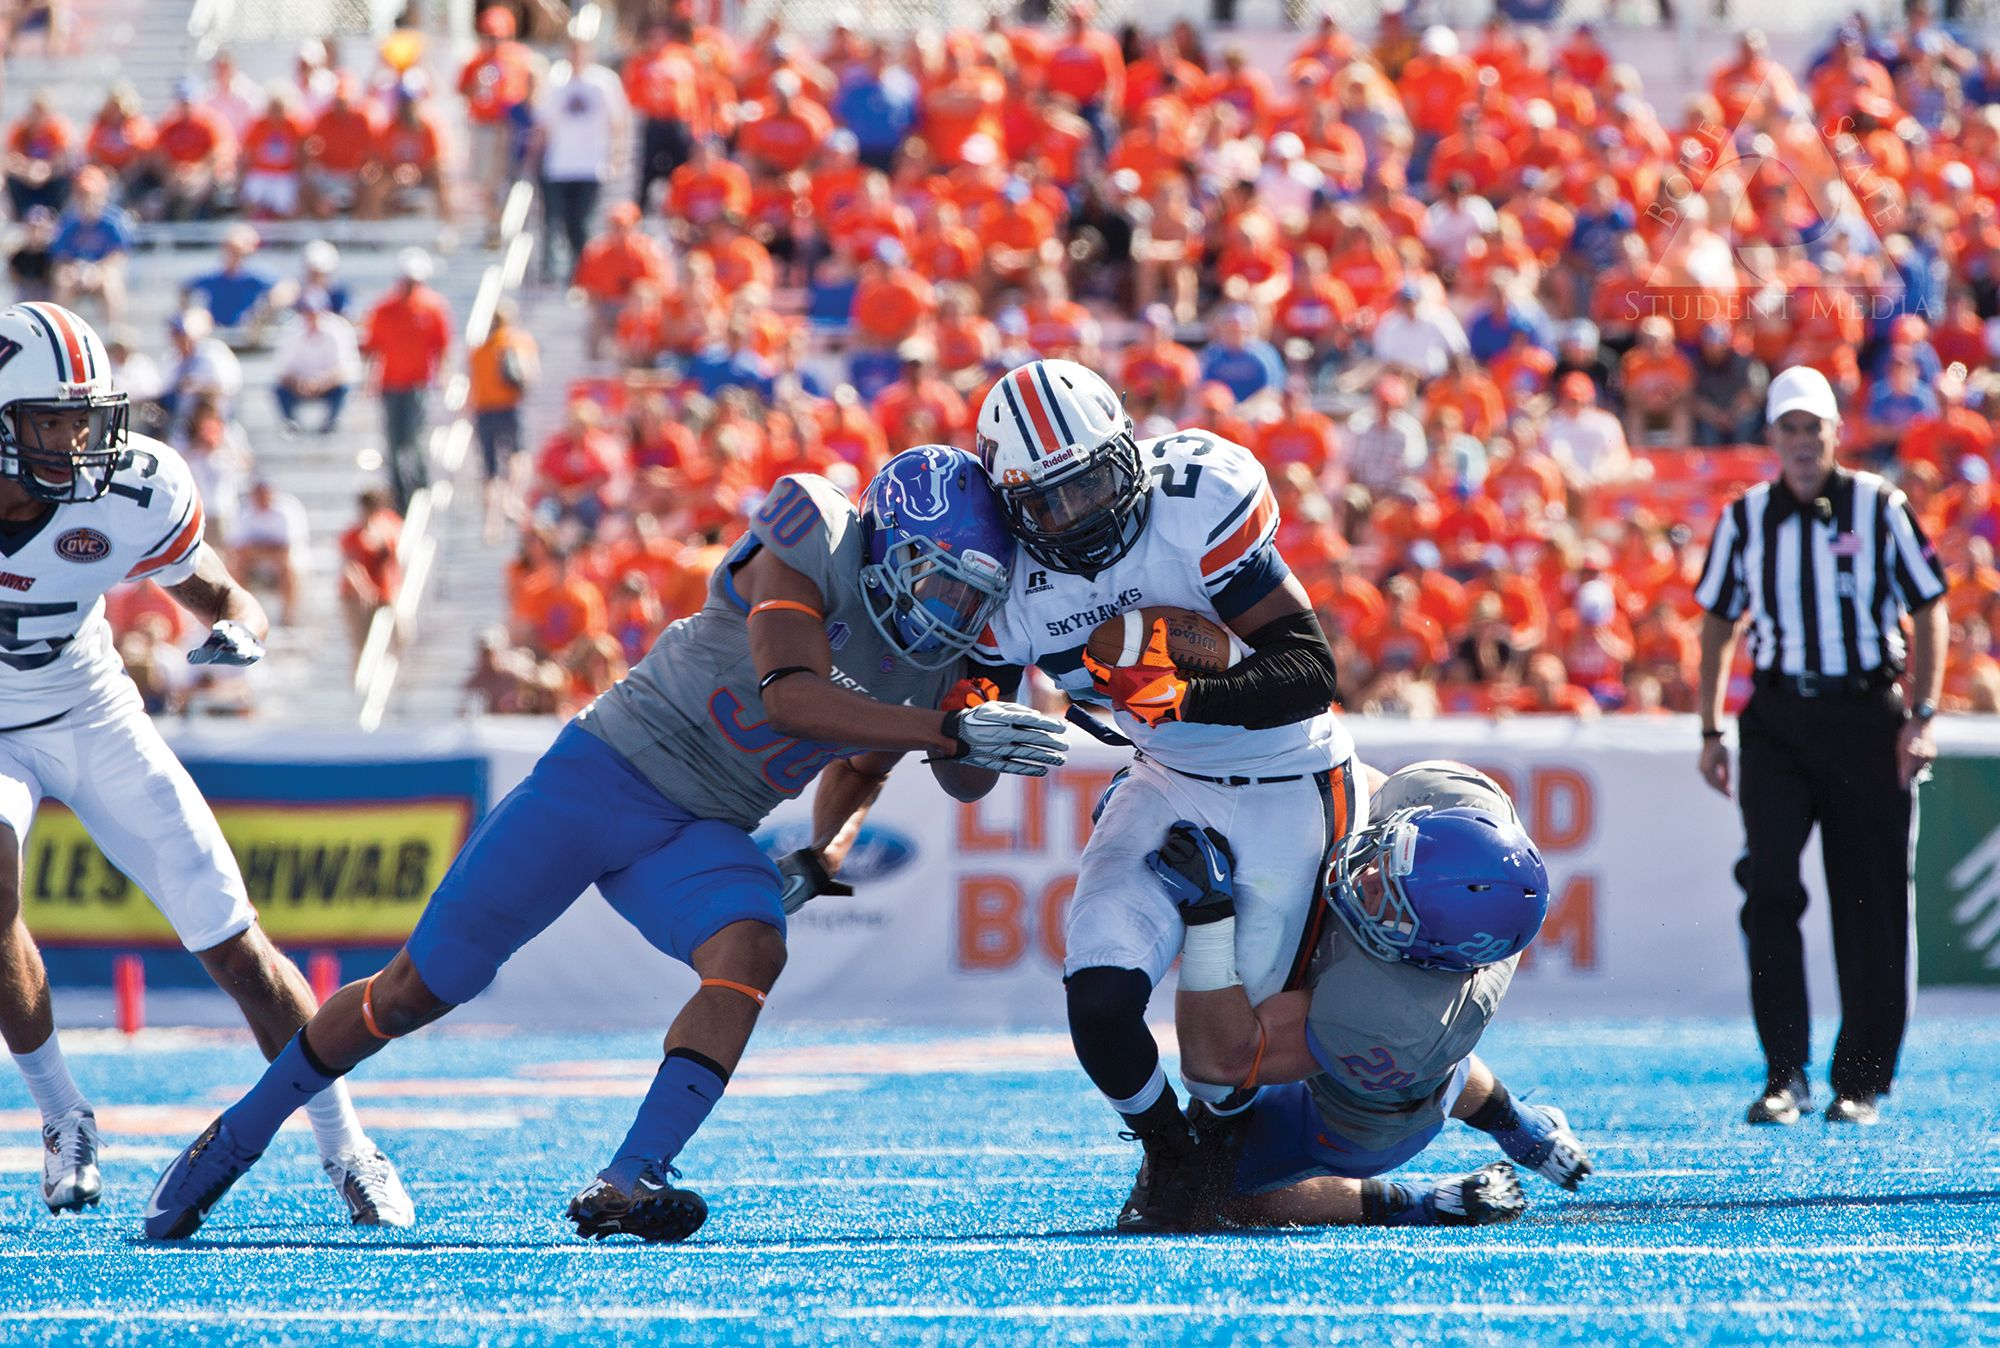 Boise State football Vs. Air Force. Devin Ferrell.  a9cbb5e2c25d8